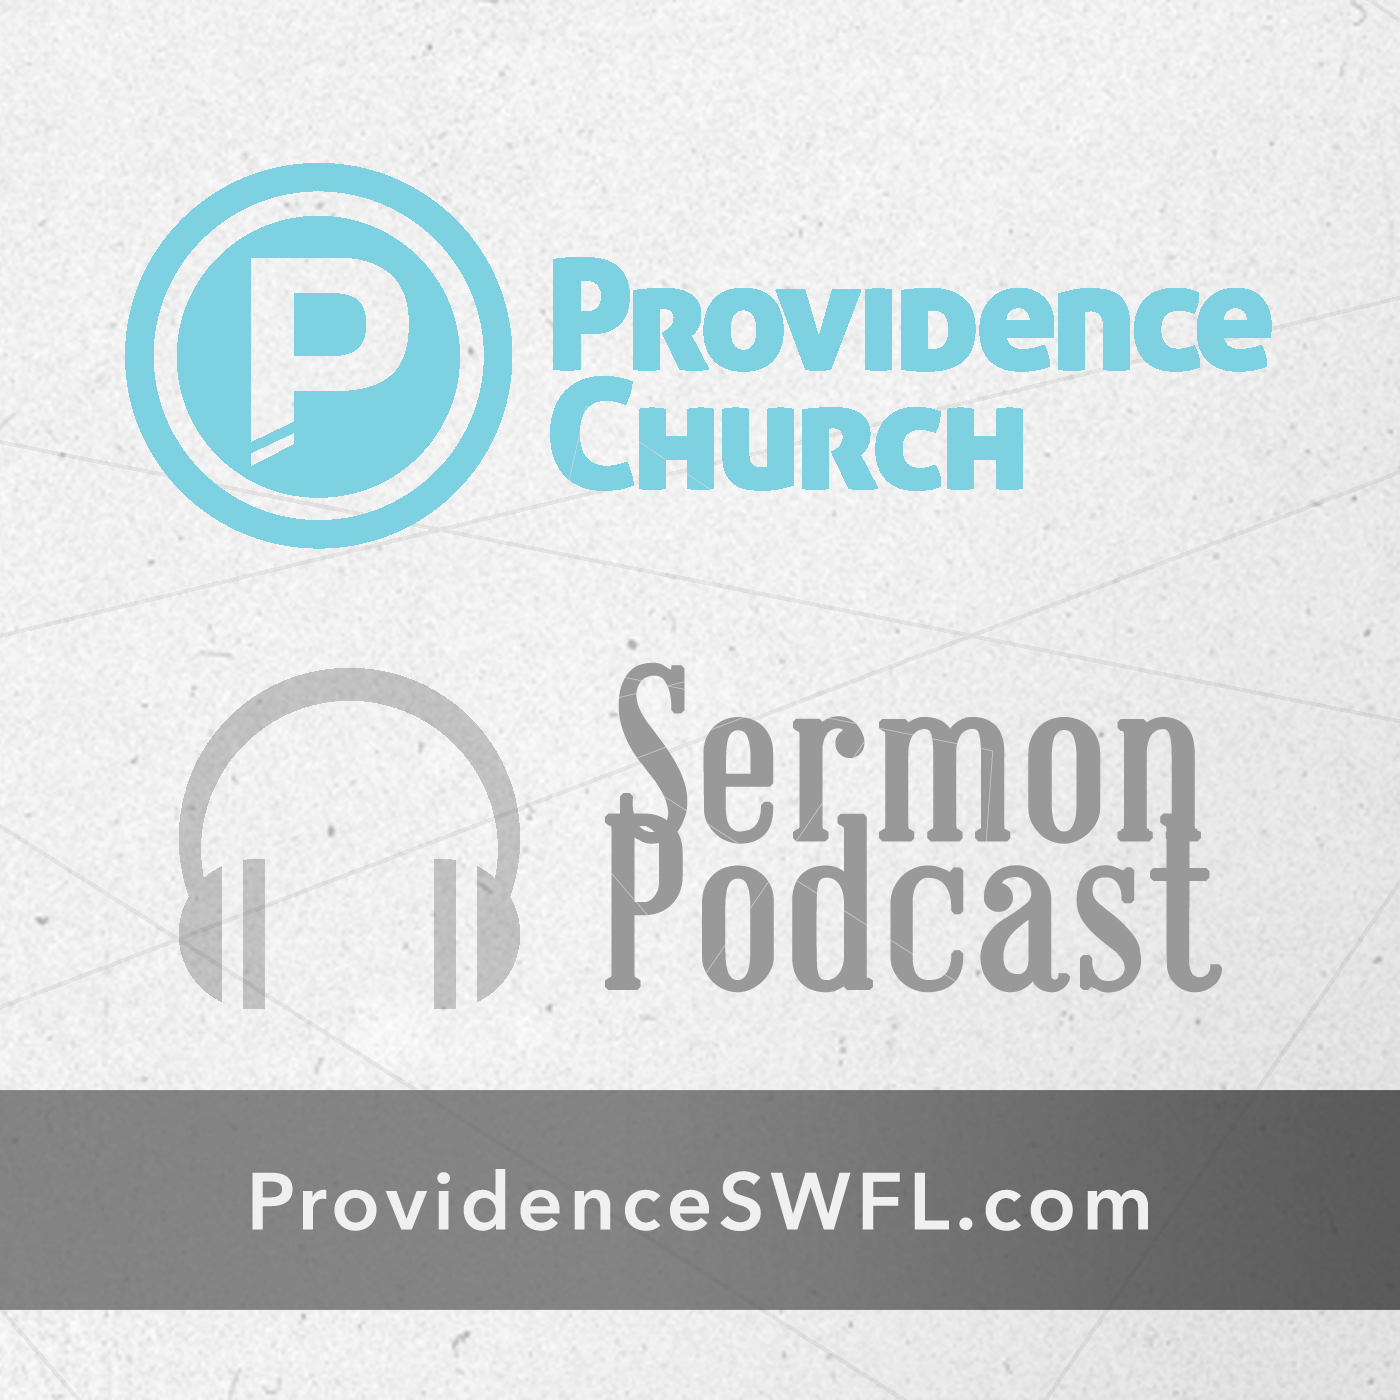 Providence Church Audio Podcast - ProvidenceSWFL.com